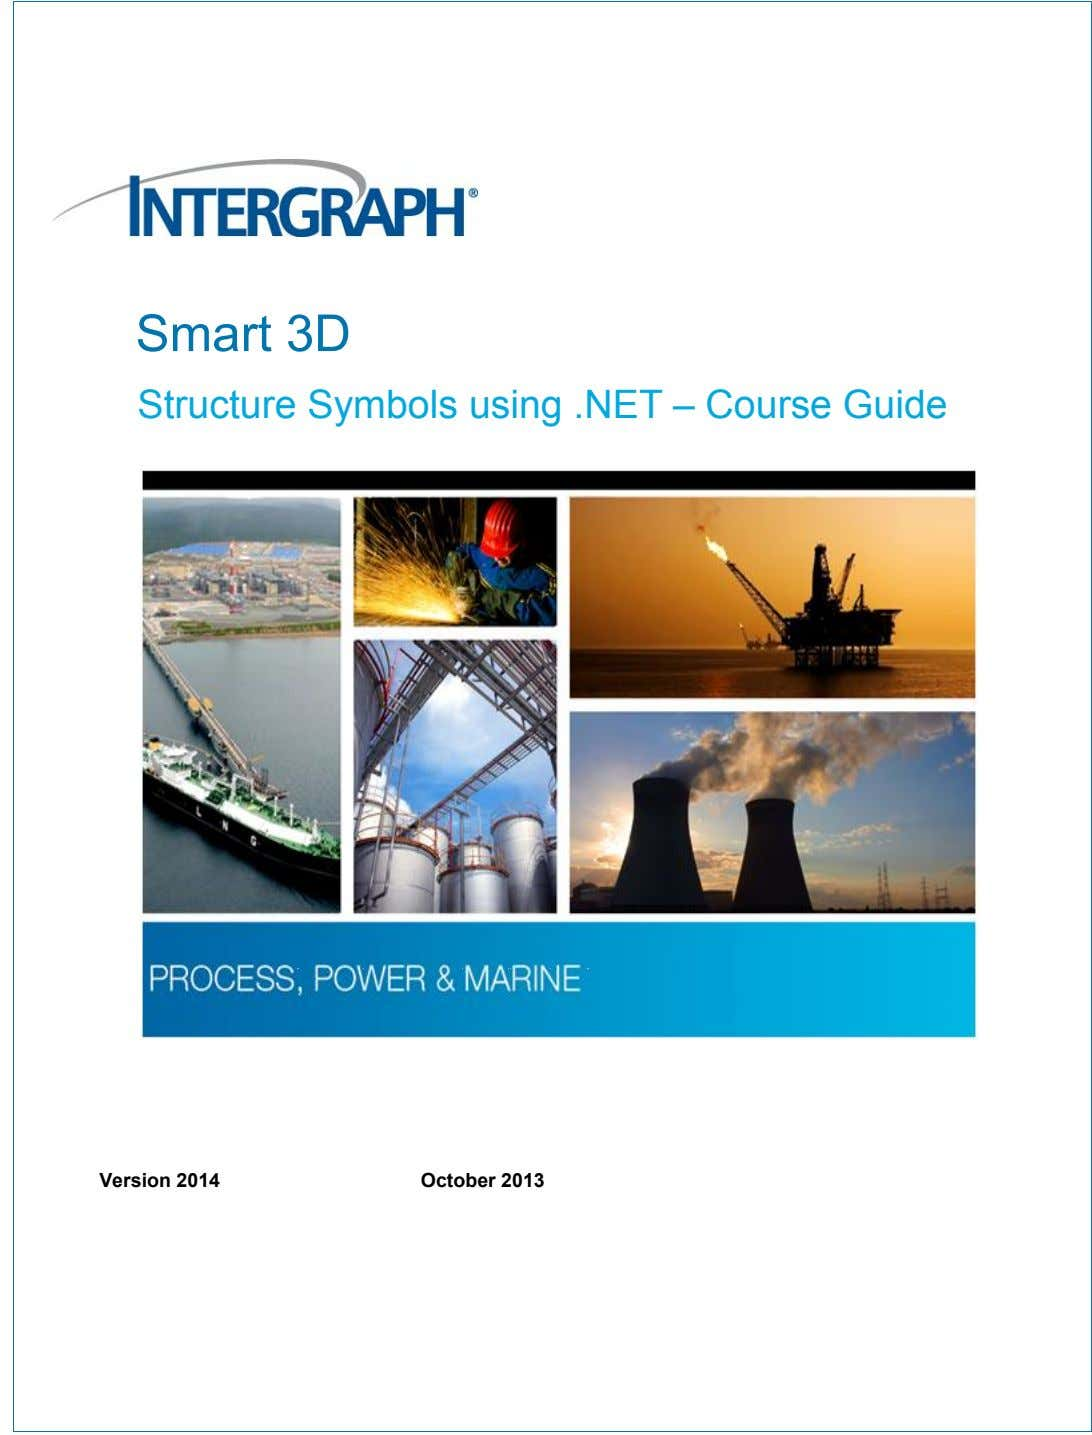 Smart 3D Structure Symbols using .NET – Course Guide Version 2014 October 2013